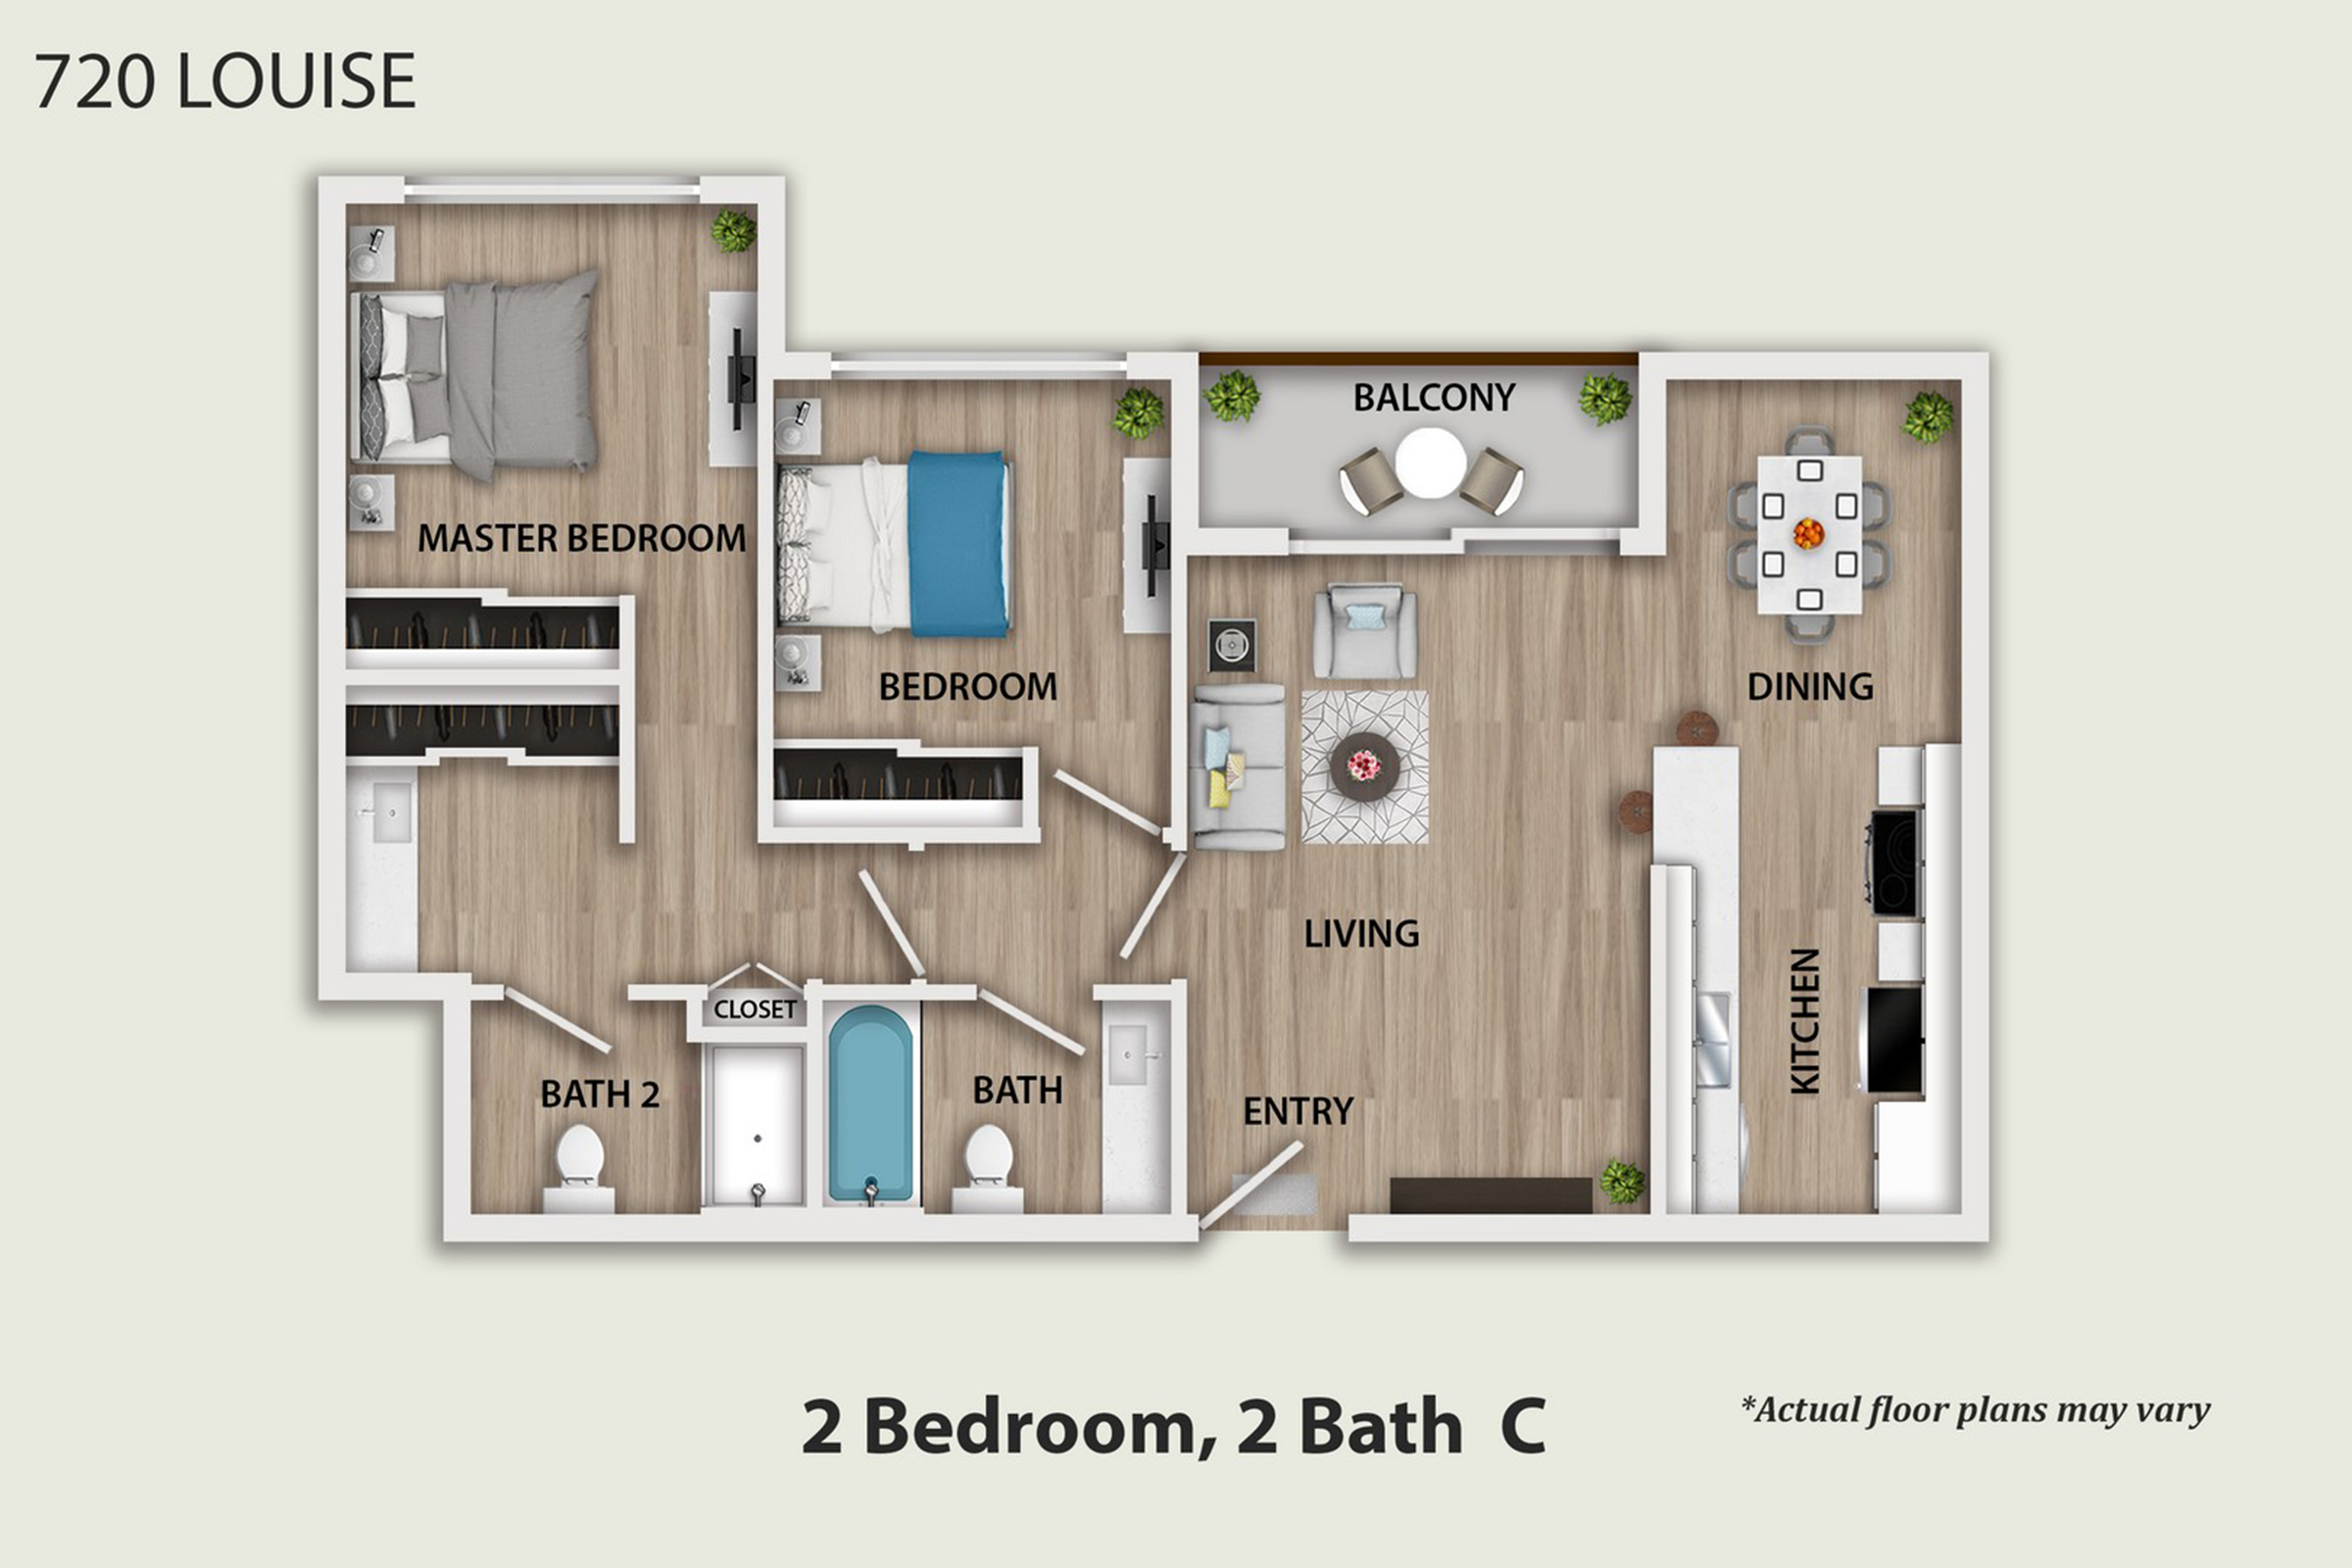 Two bedrooms for rent at 720 Louise